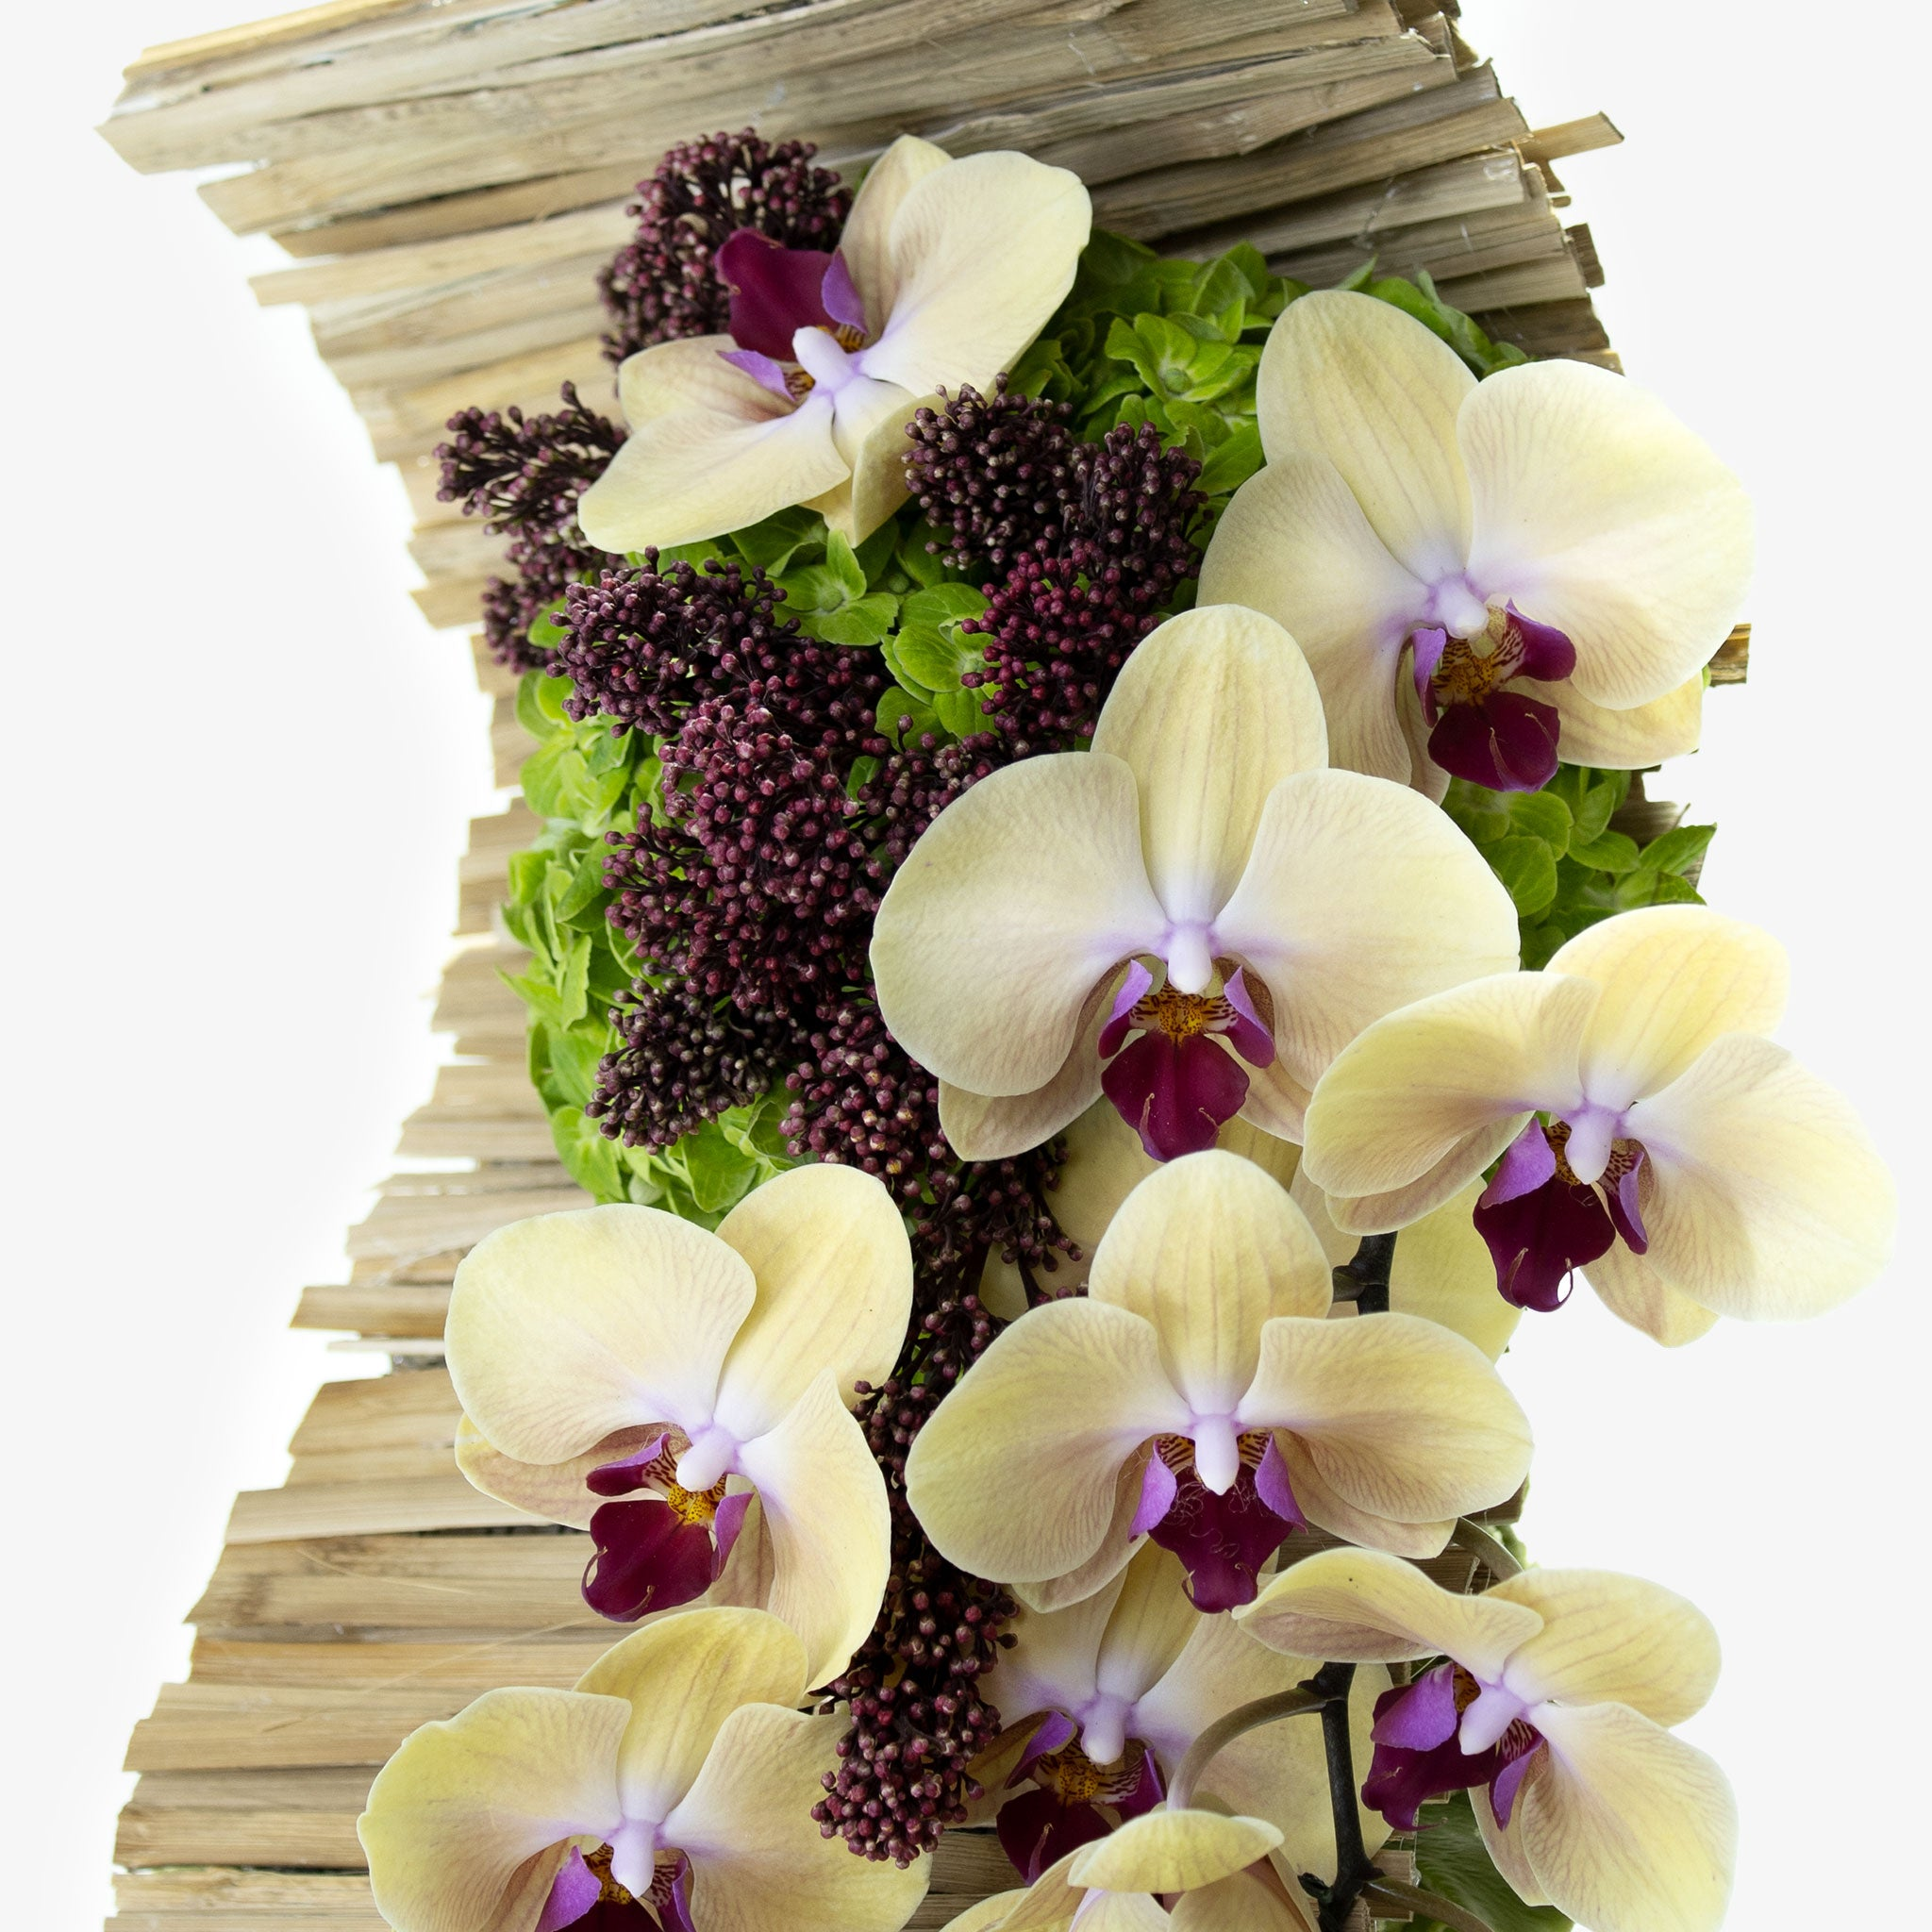 Bamboo and Orchid - Wudflowers